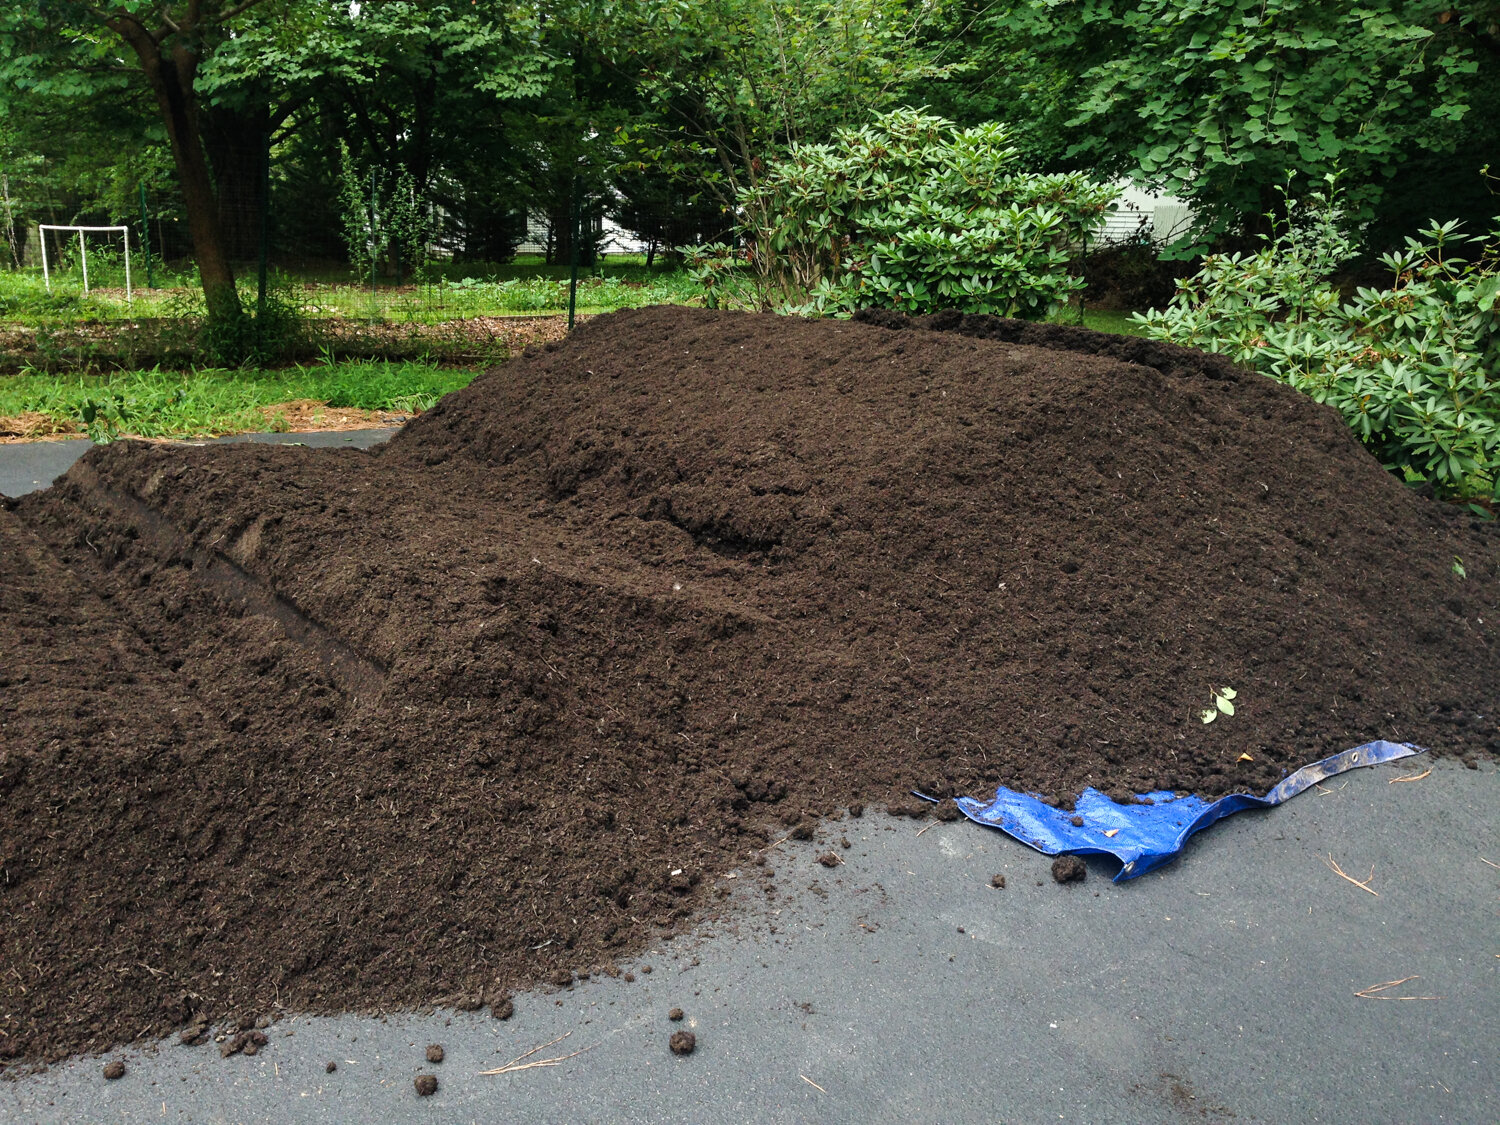 10 cubic feet of compost from Mulch and Stone, from 2016.